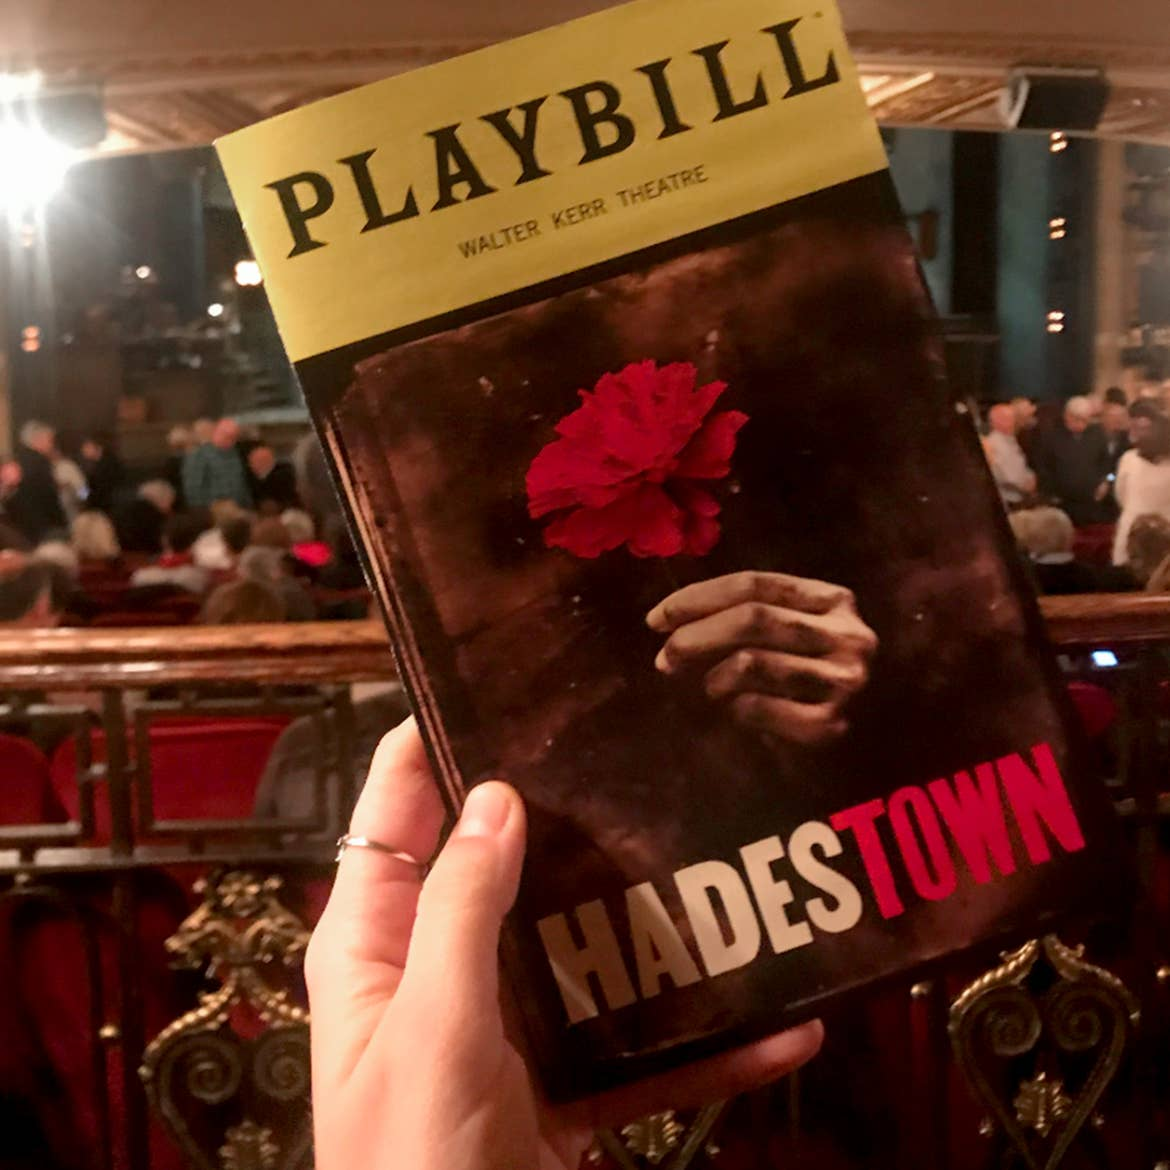 A Playbill booklet for the production of 'Hadestown' is held by a caucasian woman's hand inside of a theater.